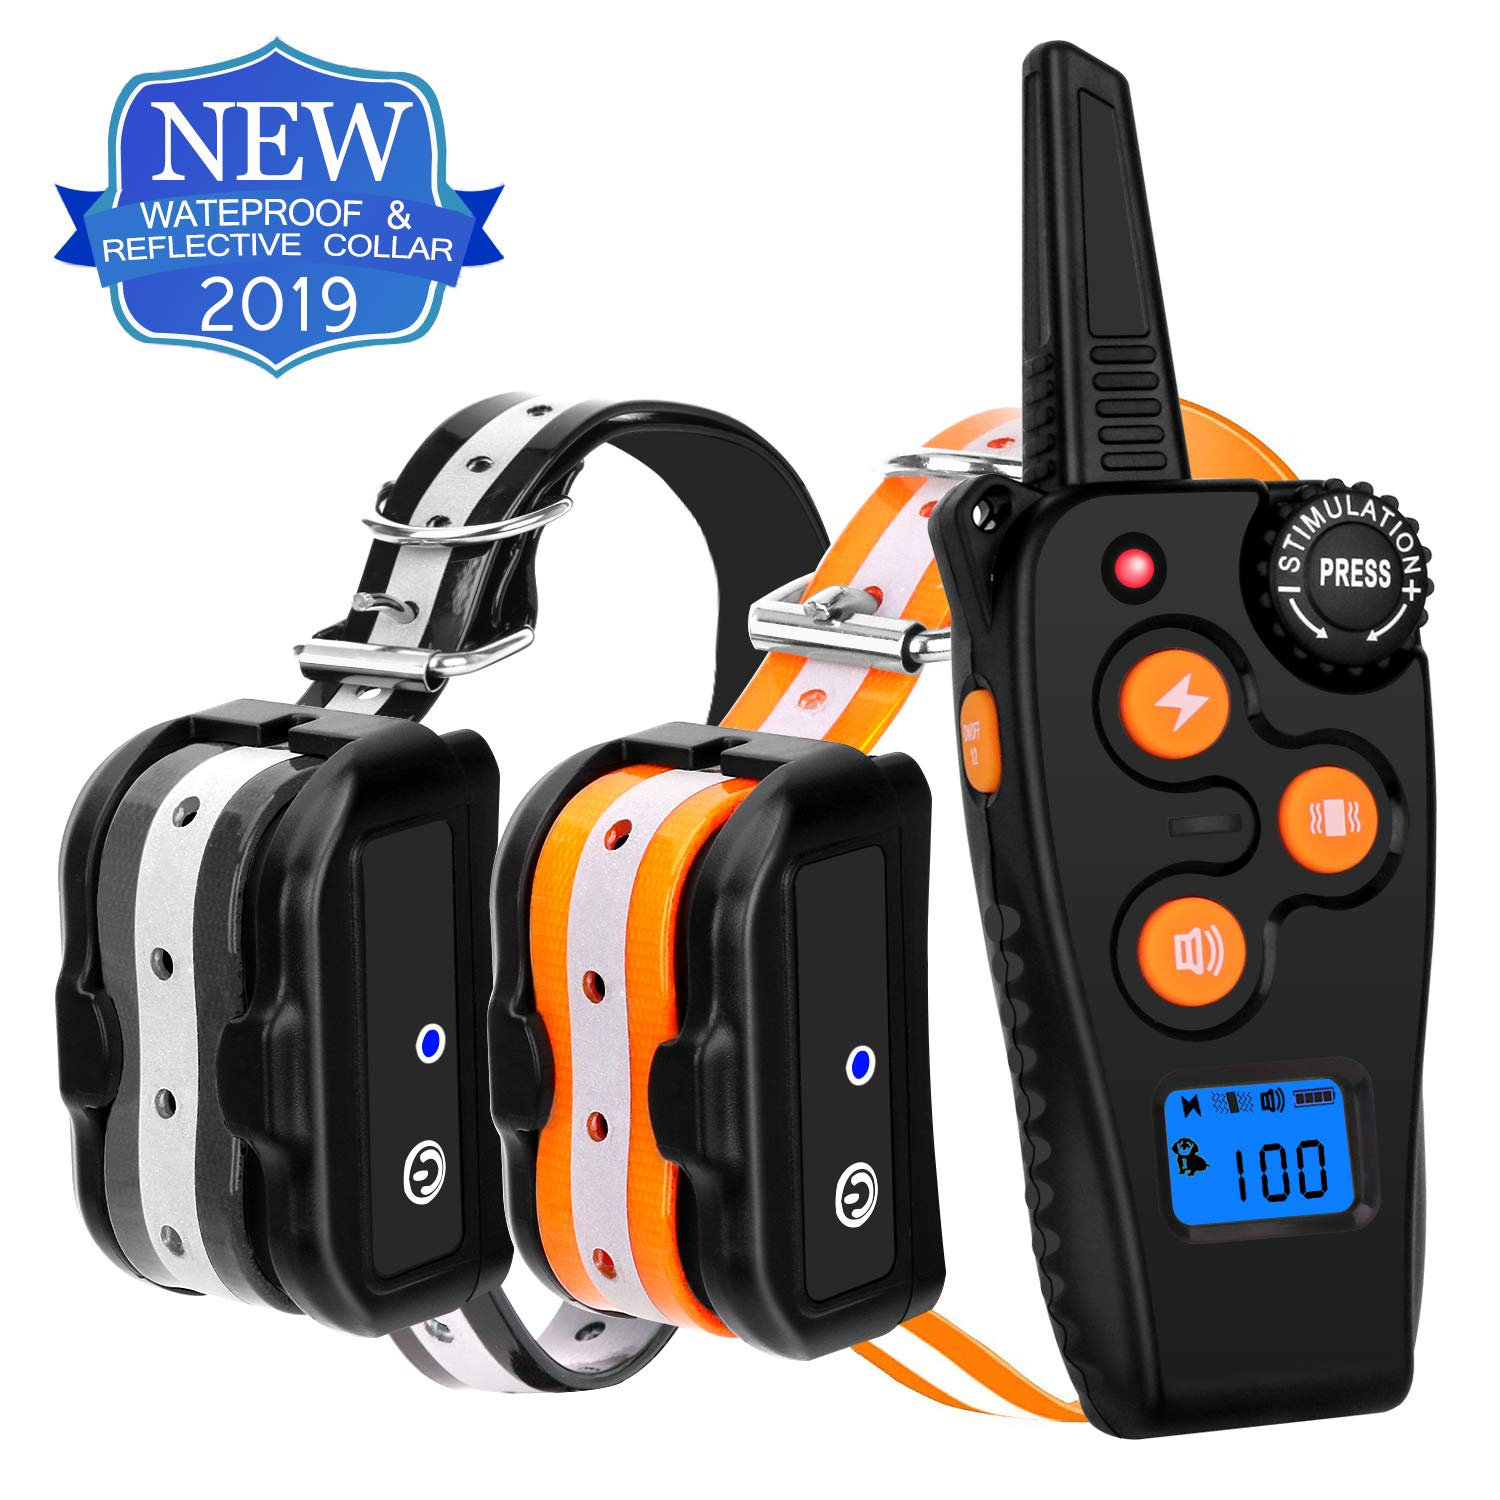 Gelicath Shock Collar for Dogs,1800ft 100% Waterproof Dog Training Collar with Beep/Vibration/Shock Collar with Remote for Small Medium Large Dogs (2 Collars) by Gelicath